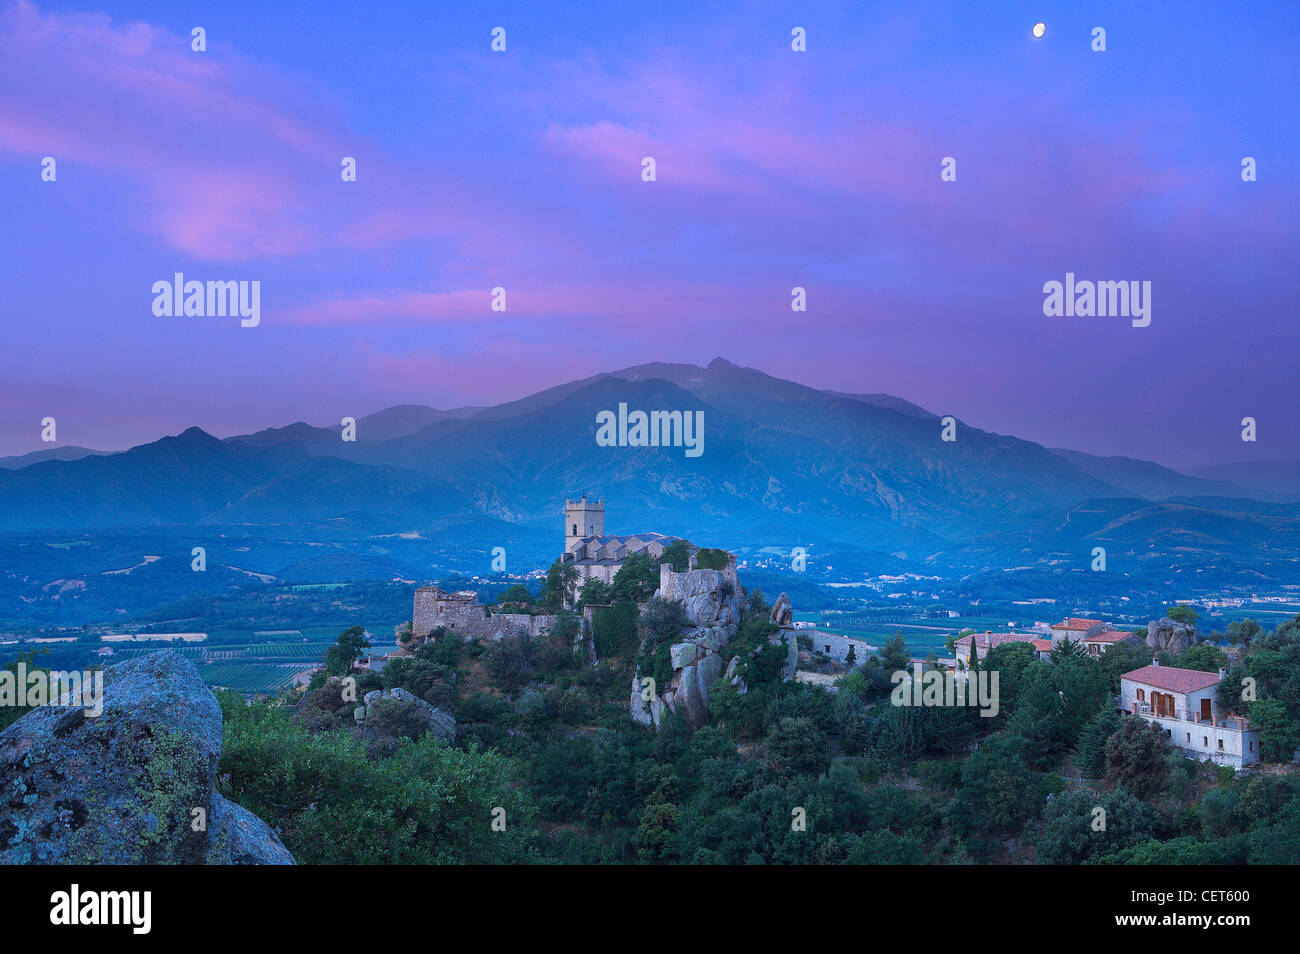 the village of Eus perched on a hilltop with the Pic de Canigou beyond, the Pyrenees, Languedoc-Rousillon, France. - Stock Image